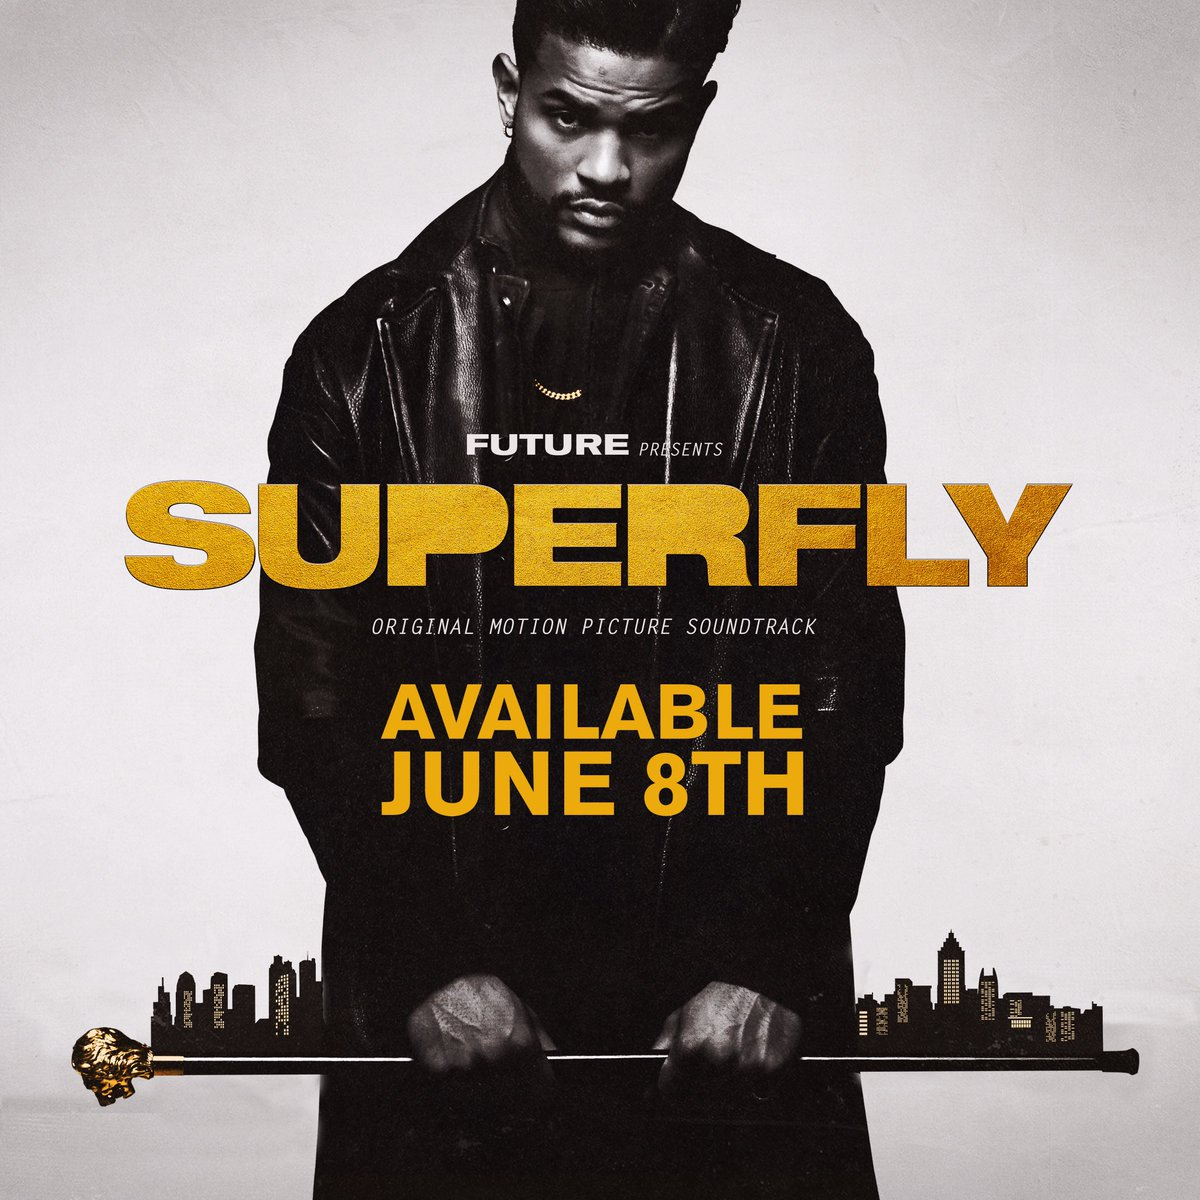 #SUPERFLY soundtrack out June 8th